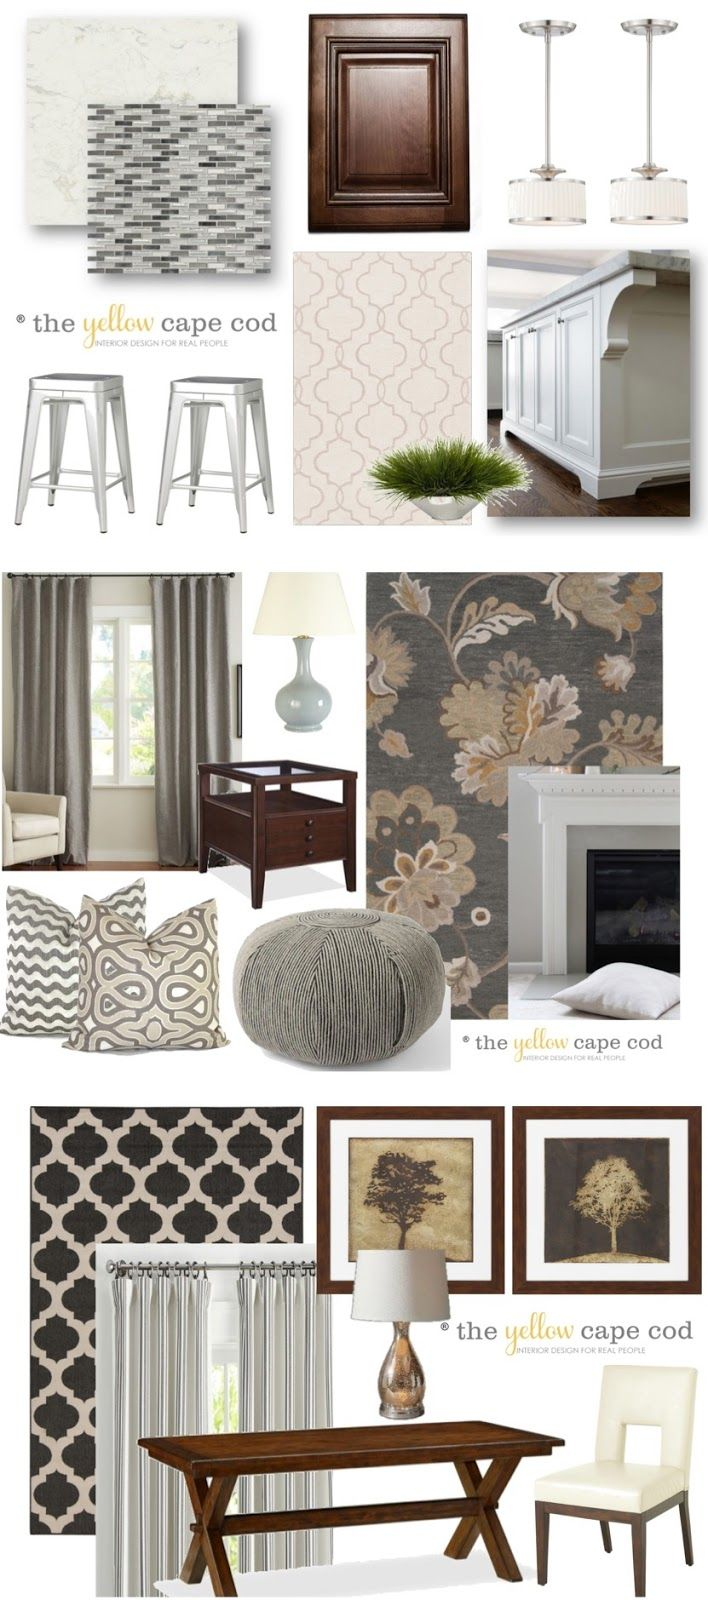 the yellow cape cod graytan transitional style multiroom design part i - Transitional Home Decor